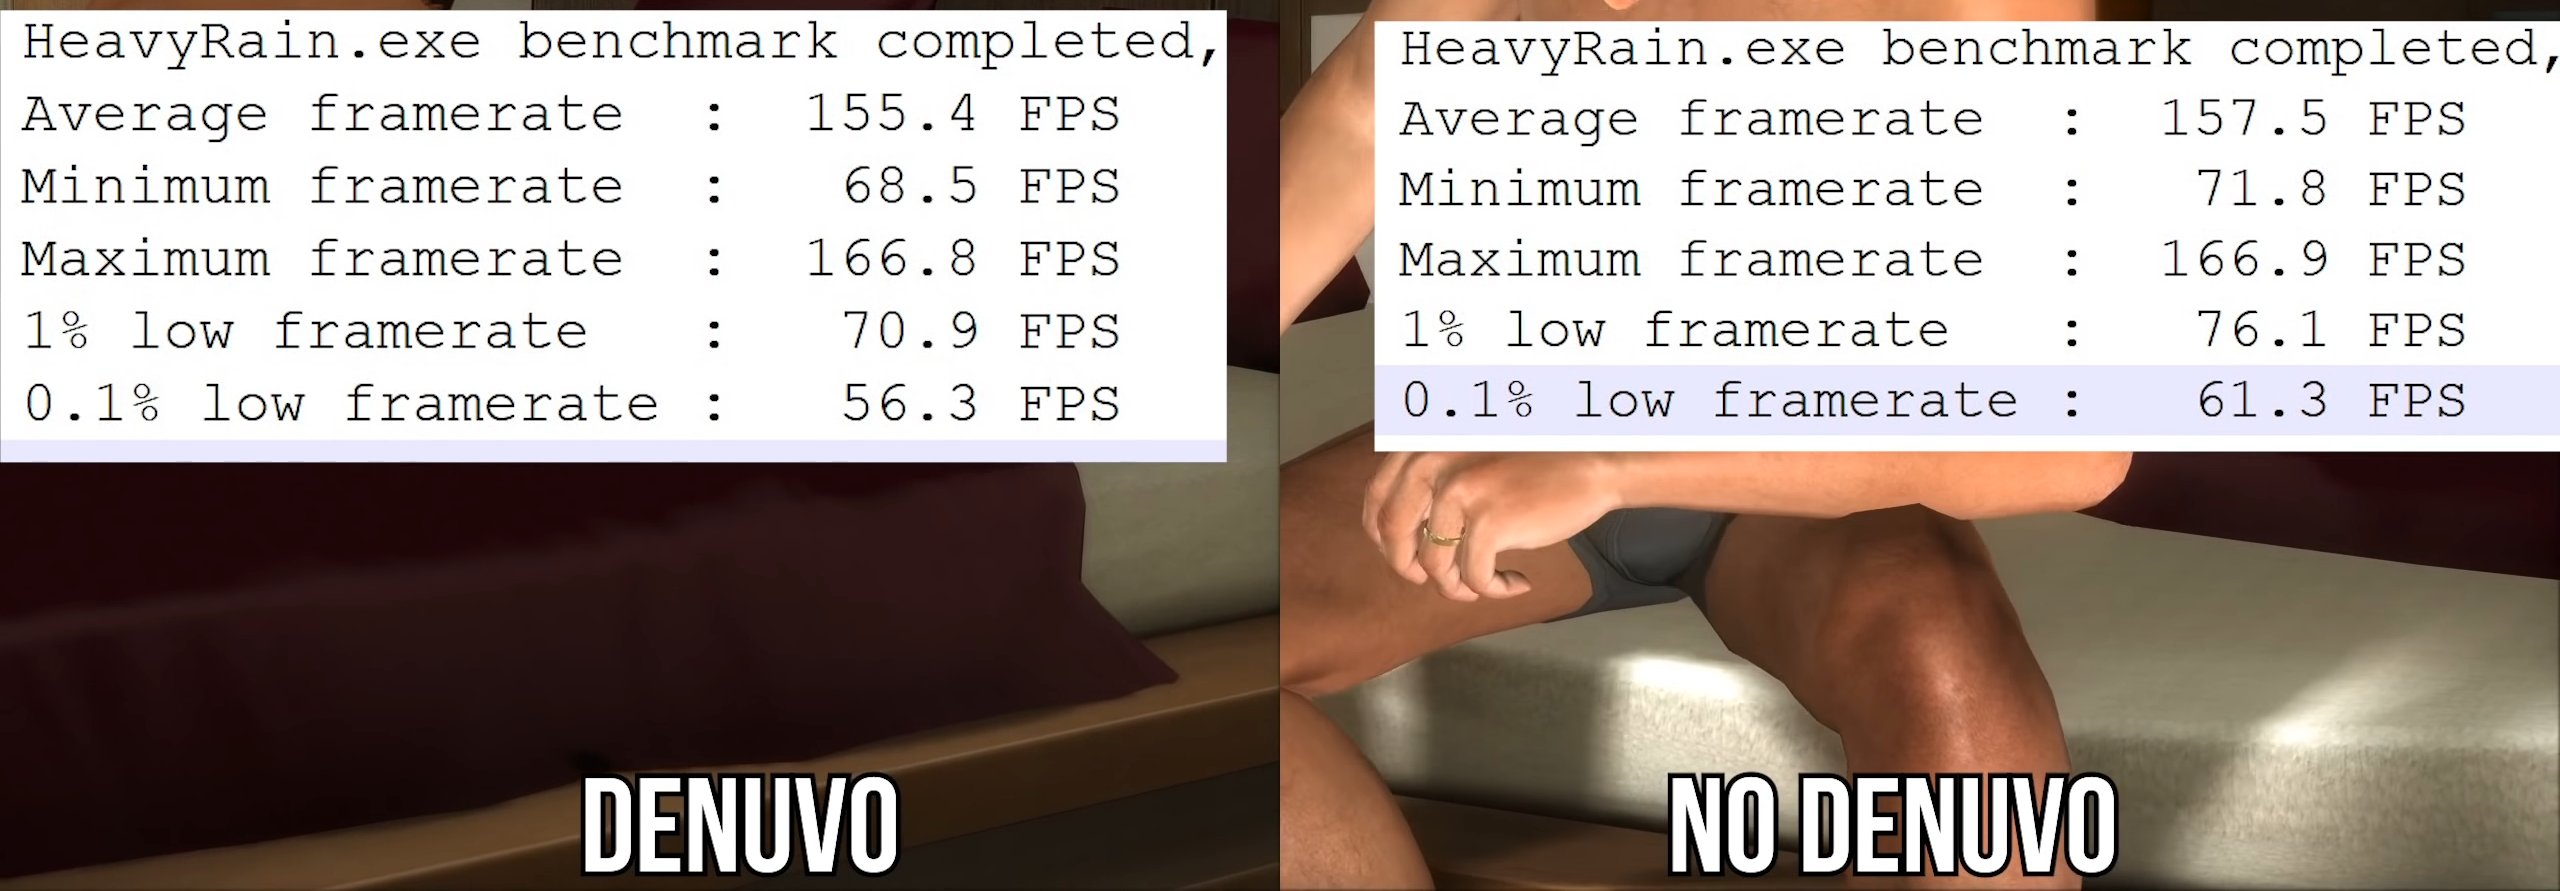 125435-Did%20Denuvo%20slow%20performance